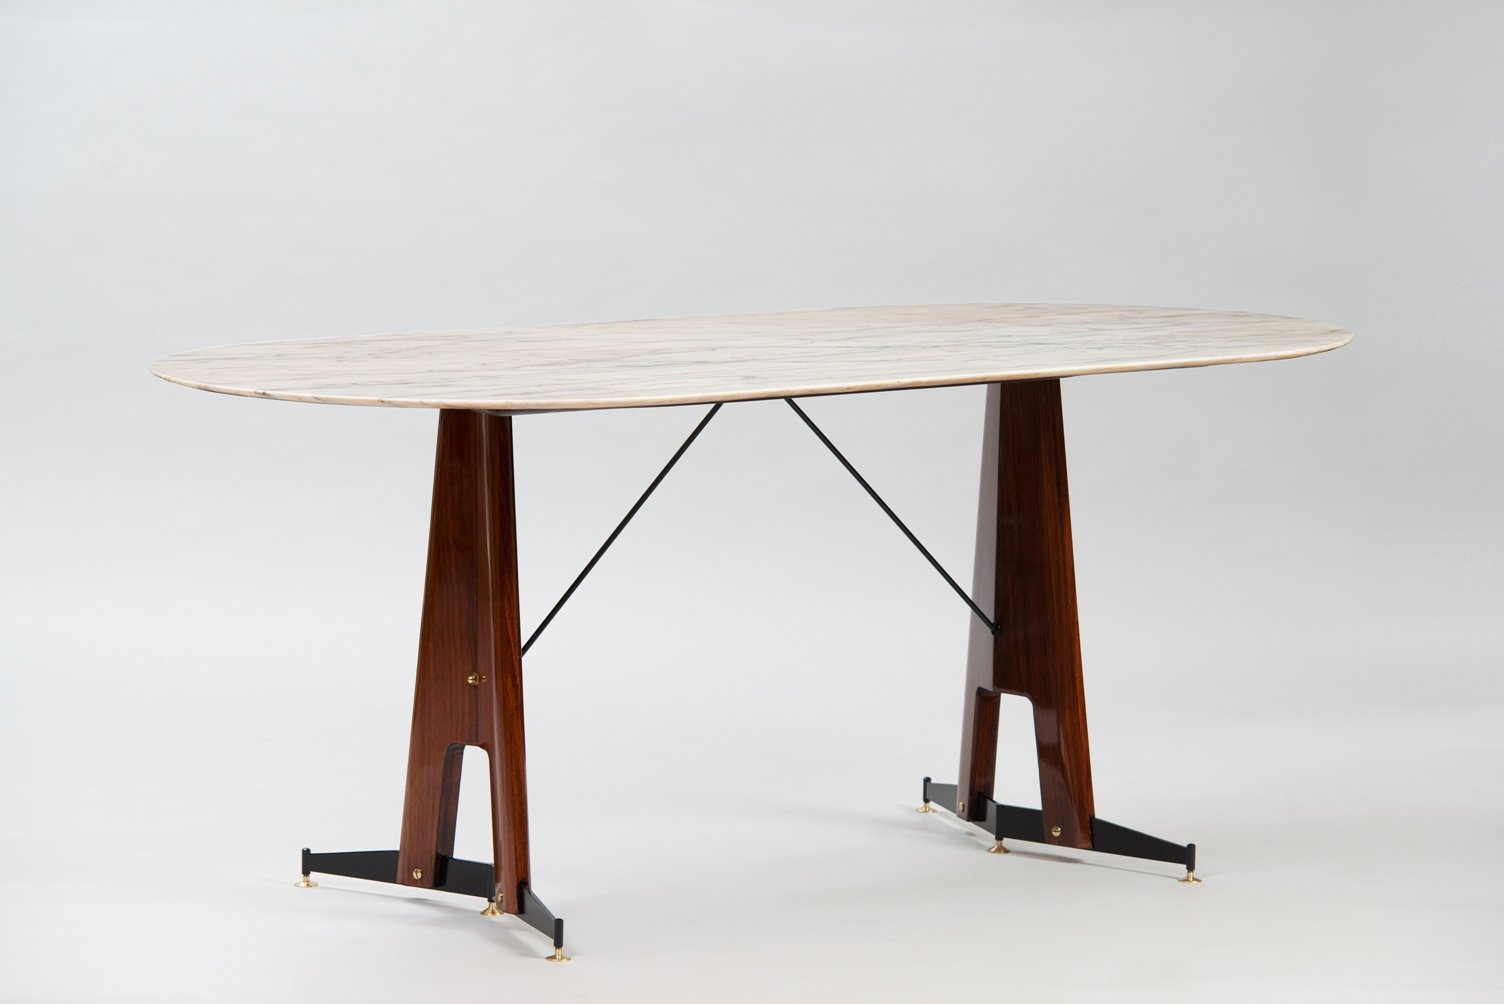 Best table salle a manger marbre design ideas lalawgroup for Grande table salle a manger